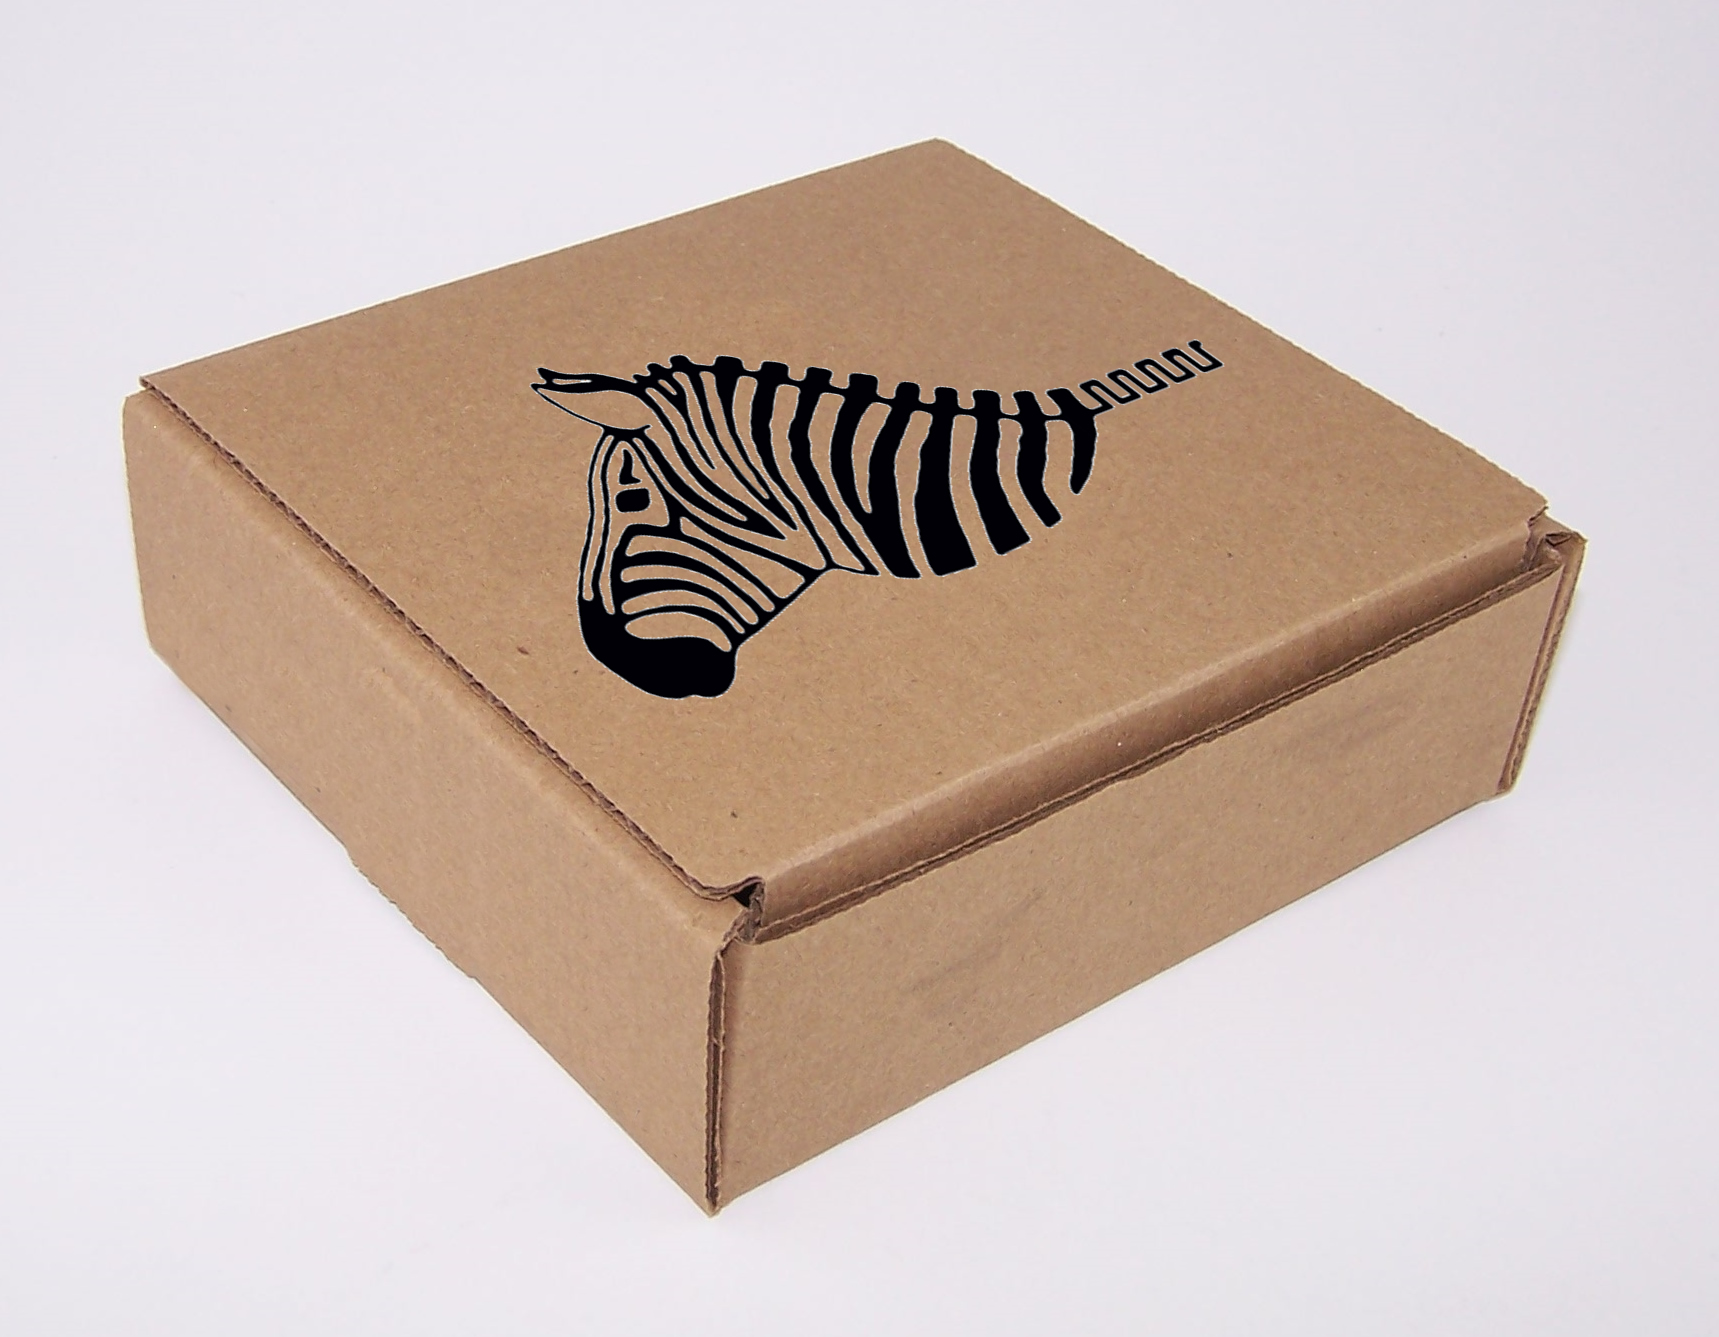 Corrugated Packing Boxes Vinyl Sticker Printing Online